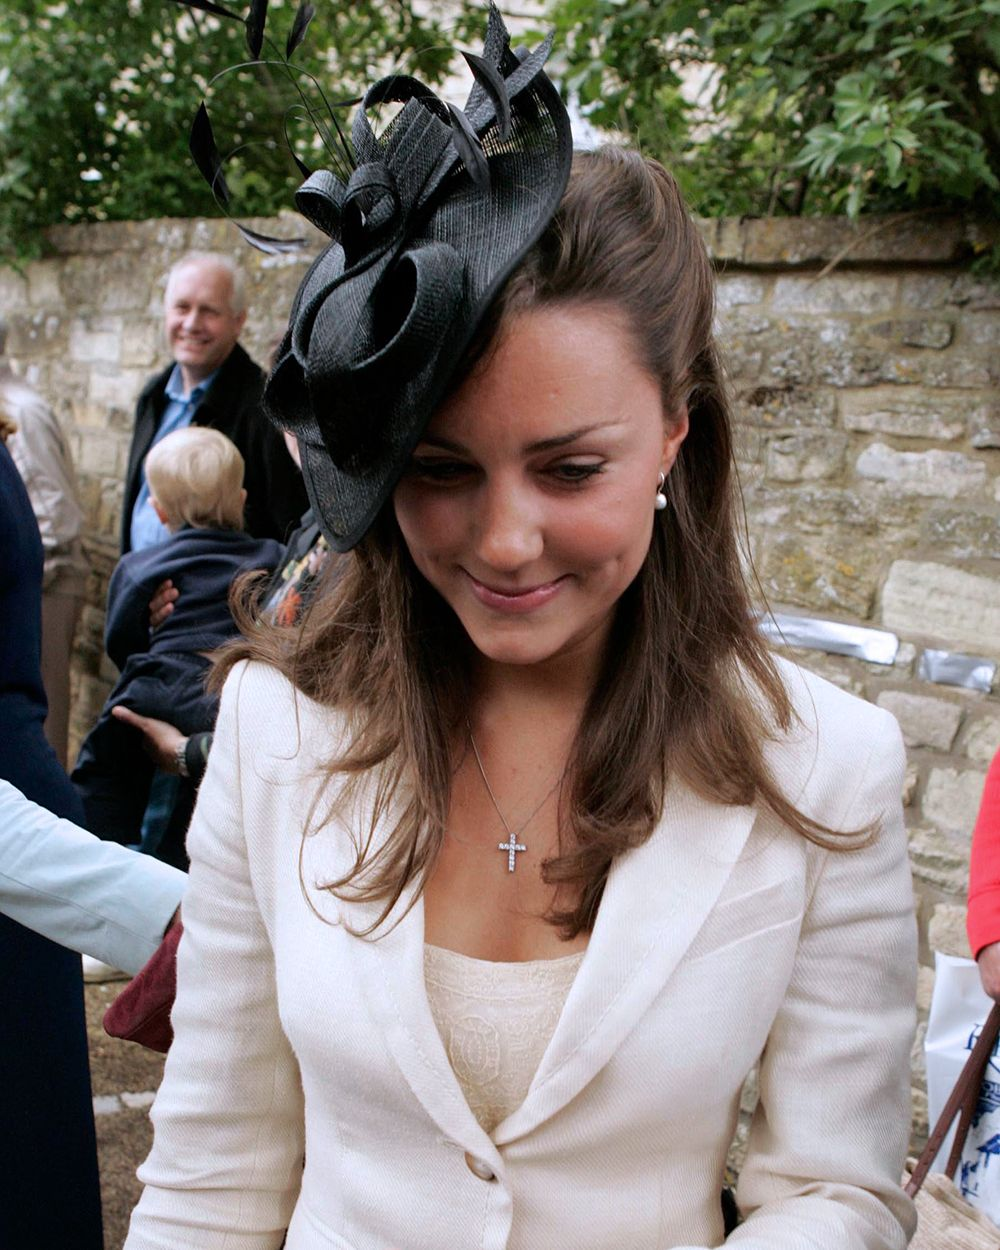 Kate Middleton, Prince William'S Girlfriend Arrives At The Society Wedding Of Hugh Van Cutsem Junior To Rose Astor At Burford Parish Church In Burford. (Photo by Mark Cuthbert/UK Press via Getty Images)